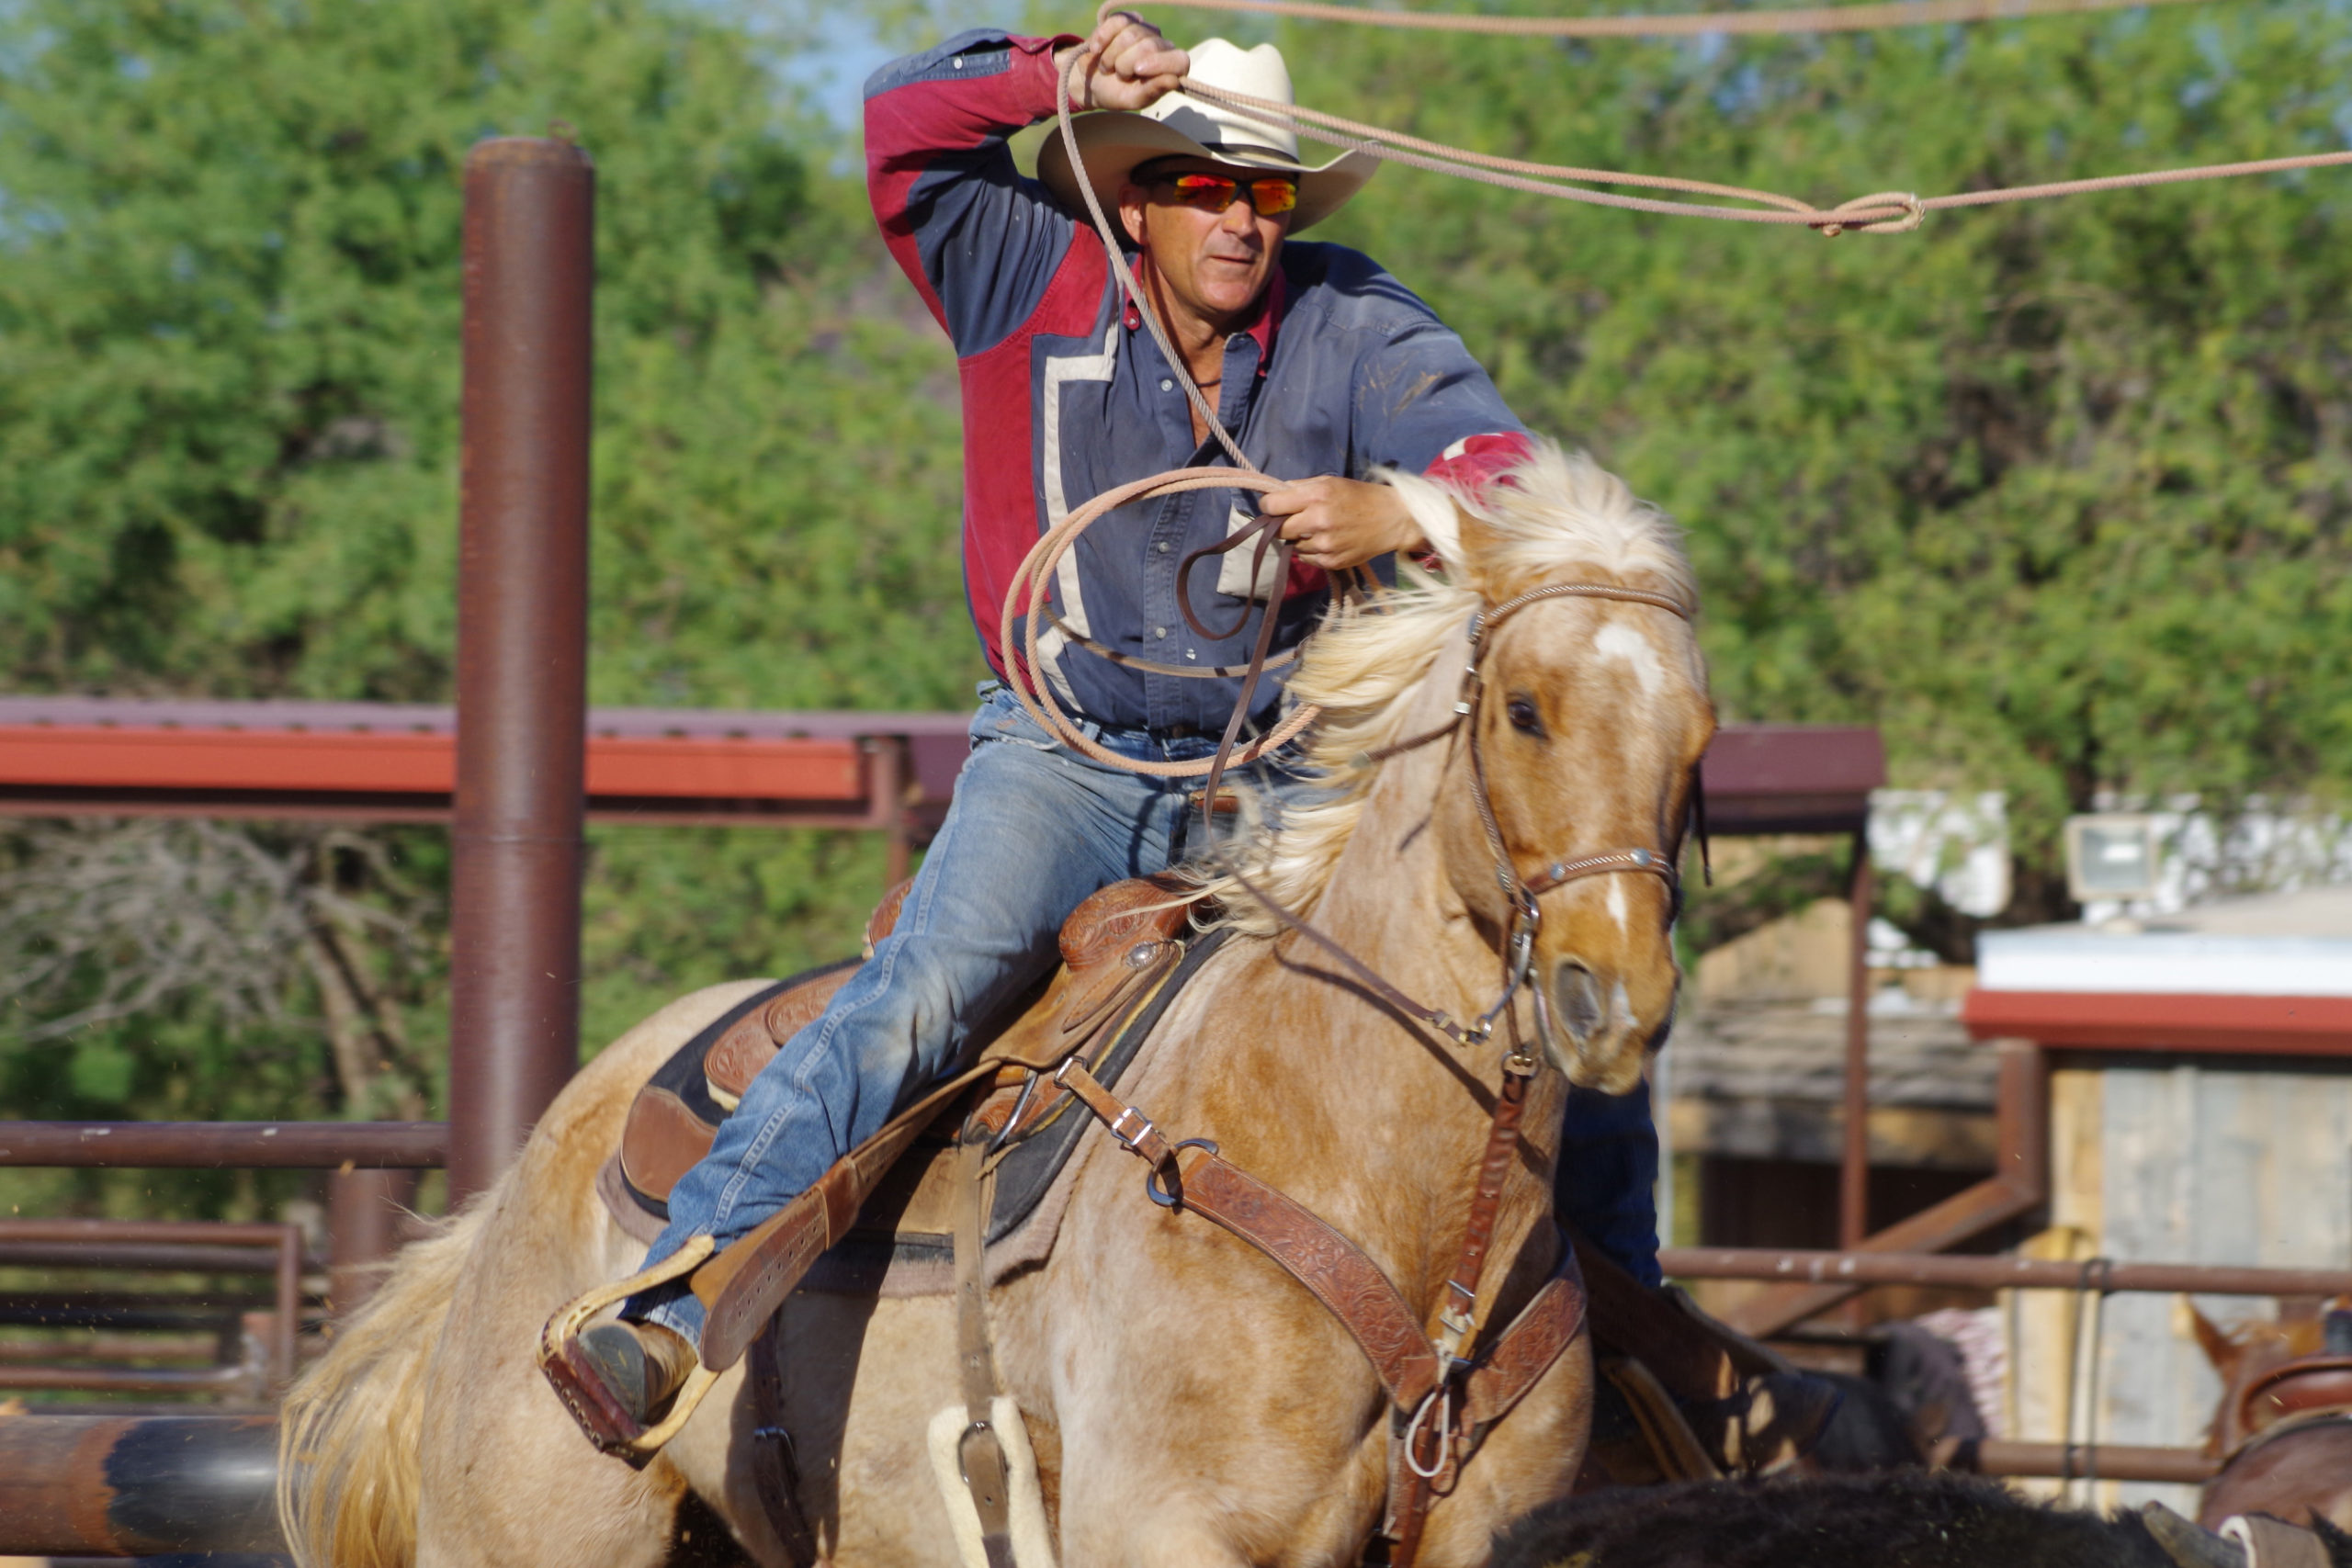 White Stallion Roping All-American Dude Ranch Experience